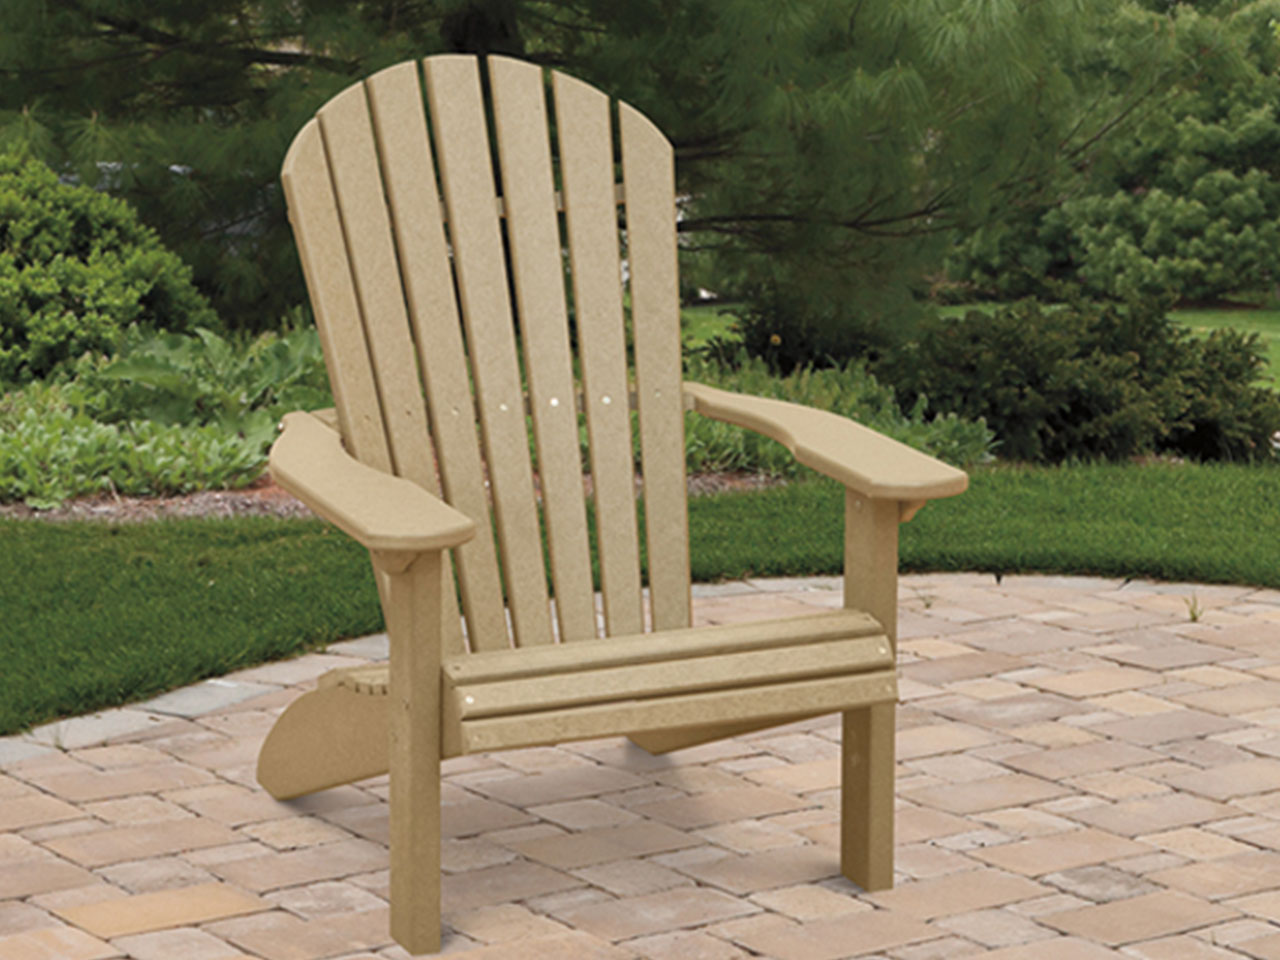 Outdoor furniture - poly fanback chair